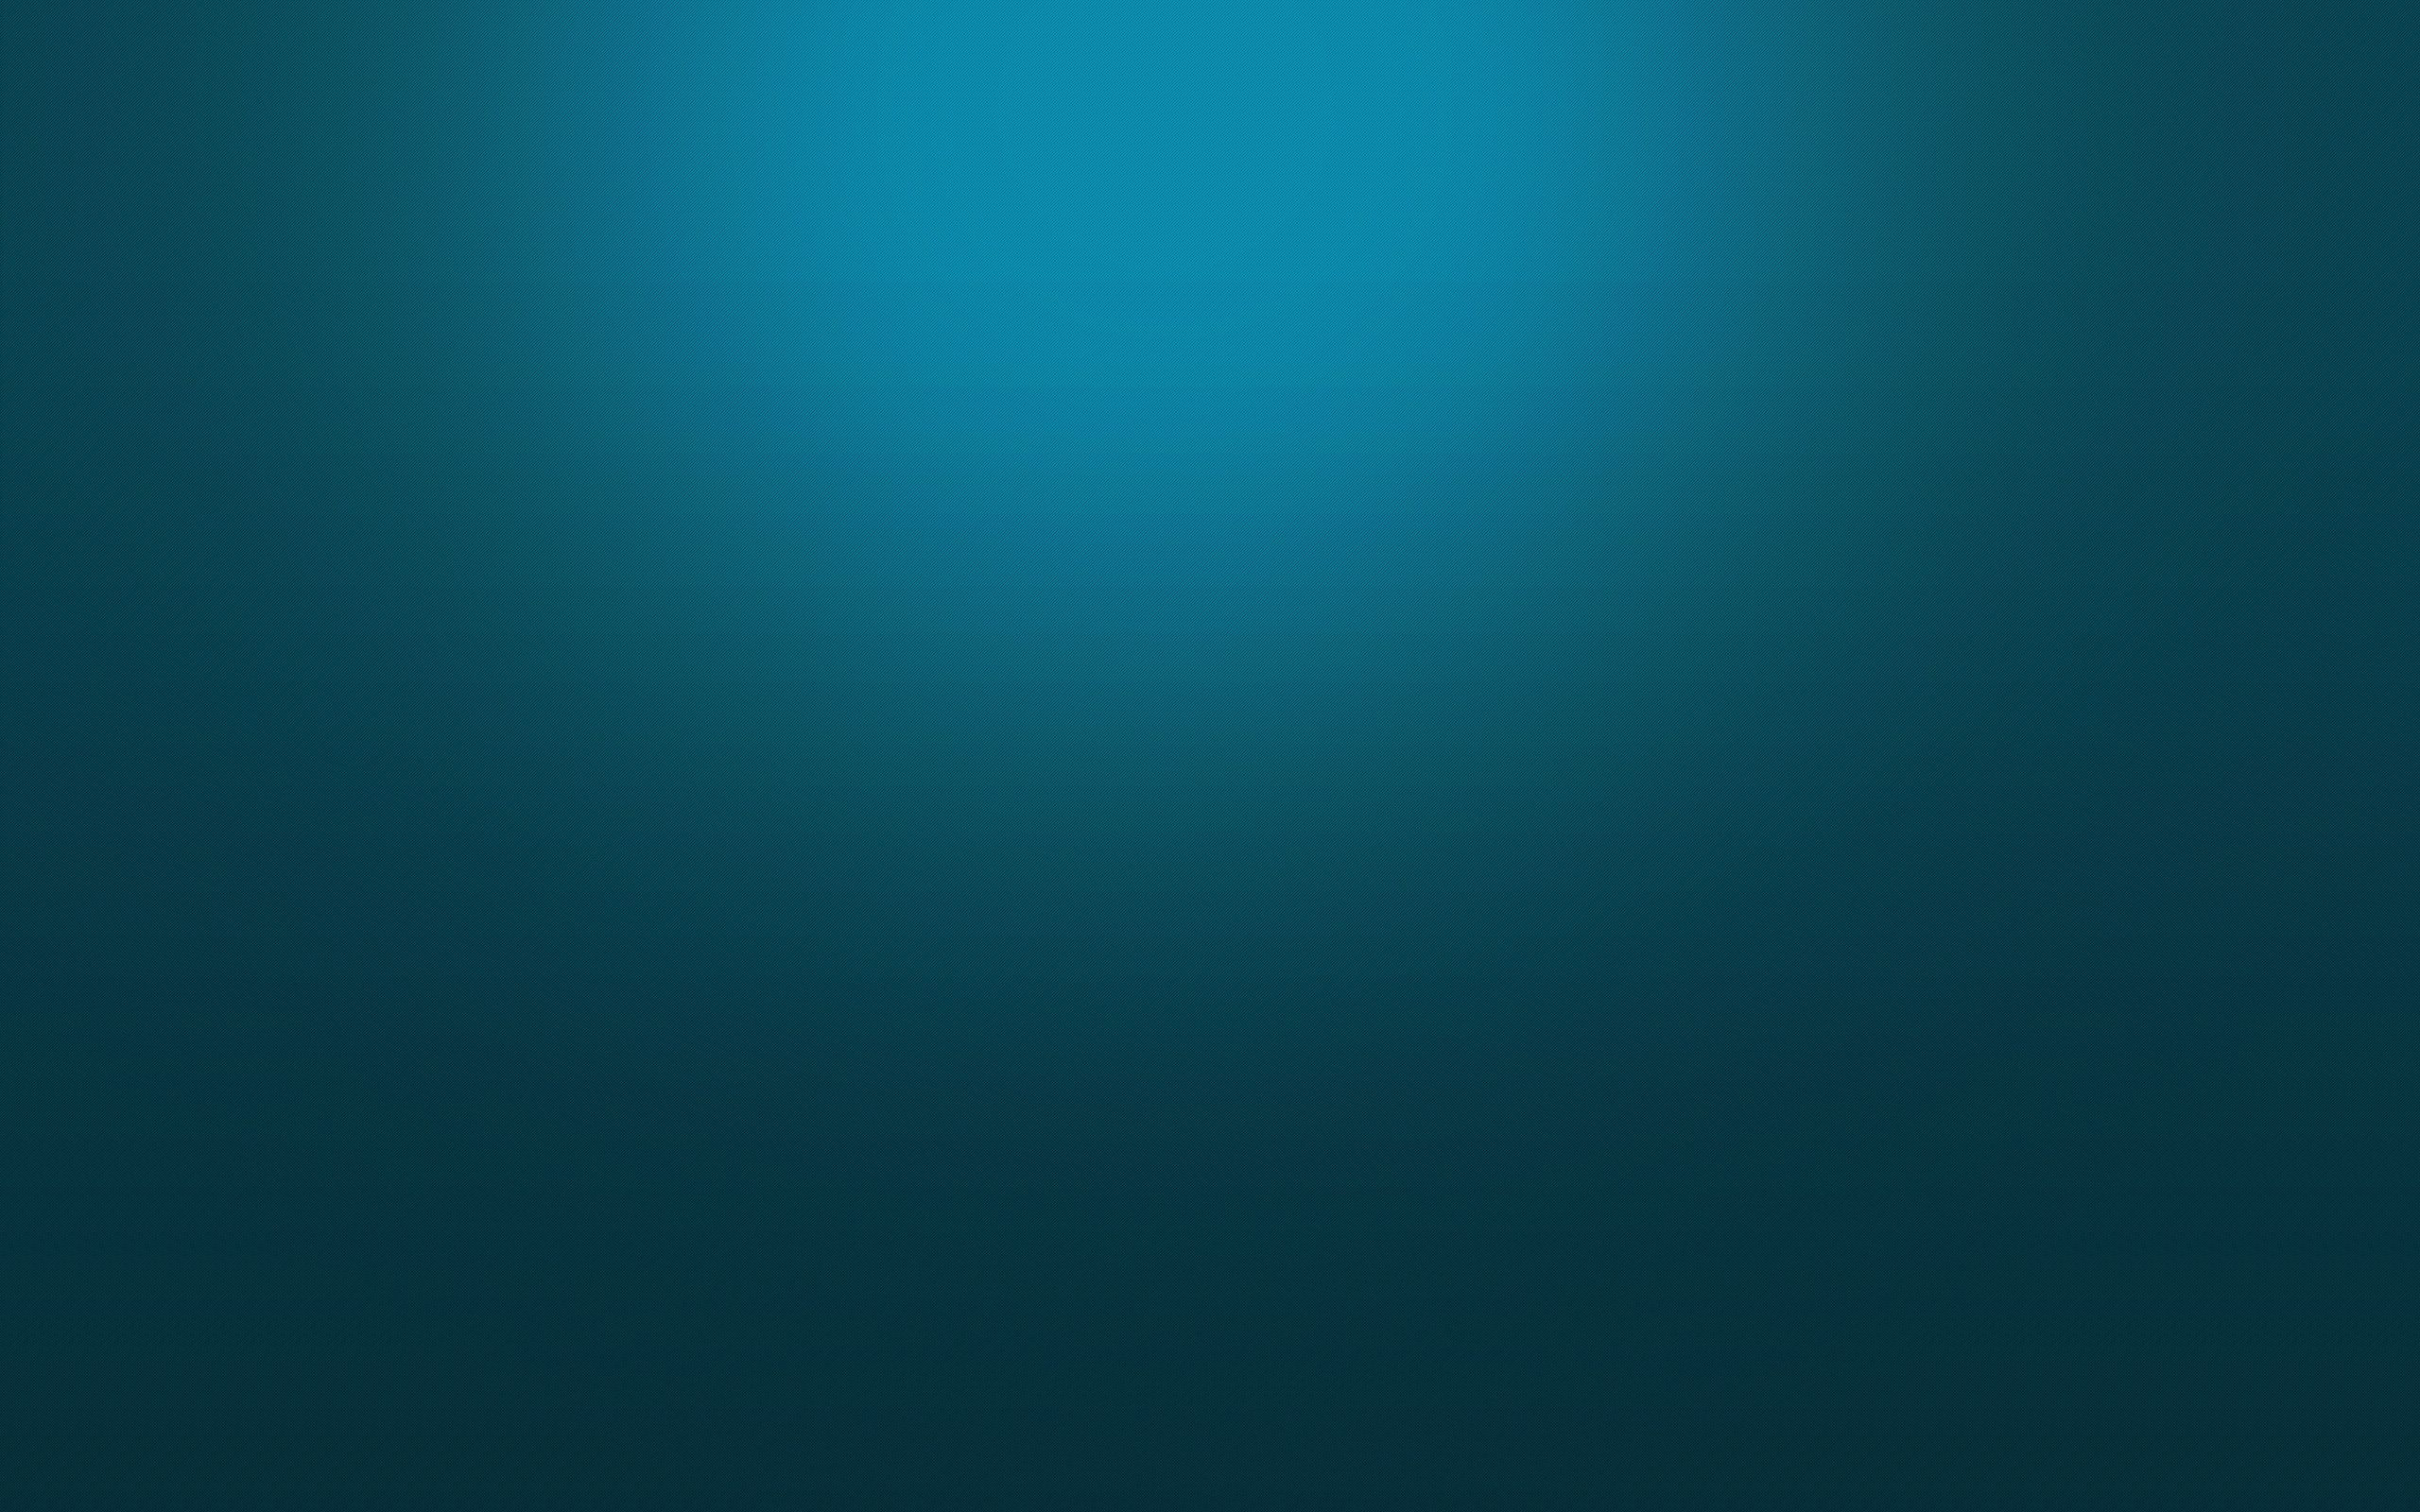 88376 free wallpaper 1440x2560 for phone, download images Textures, Background, Texture, Surface, Color, Solid 1440x2560 for mobile